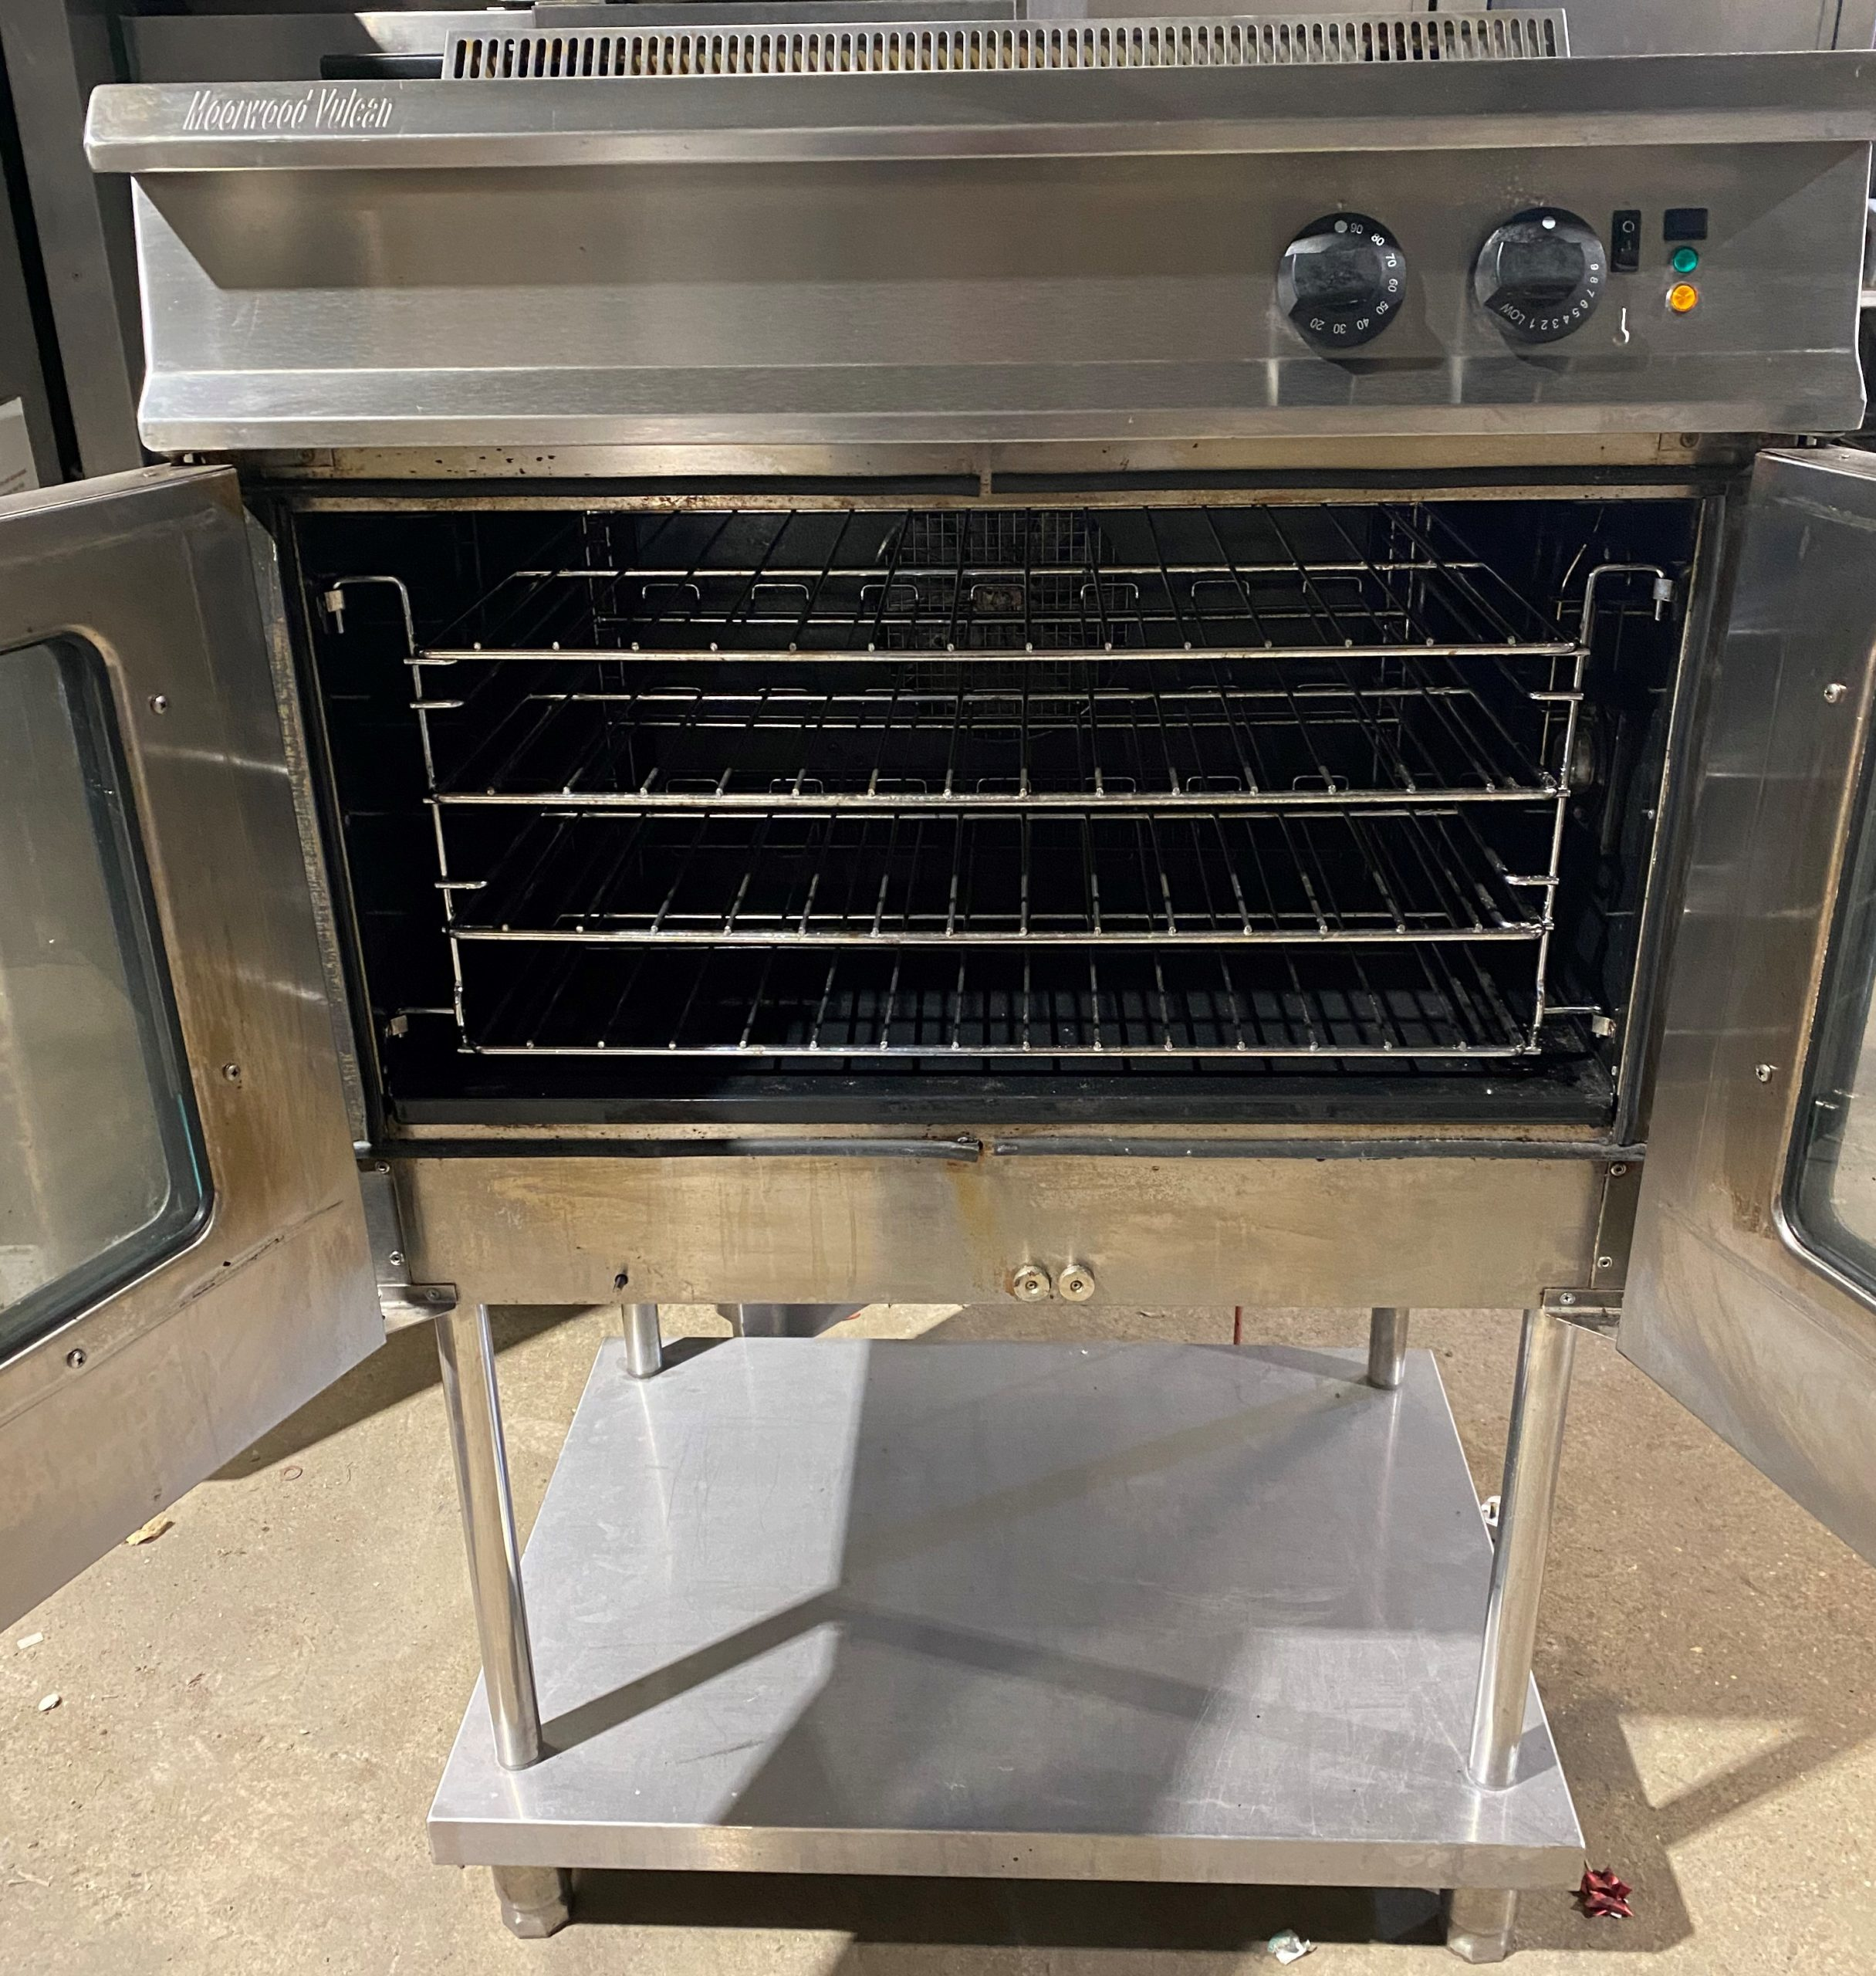 MOORWOOD VULCAN Gas Convection Oven